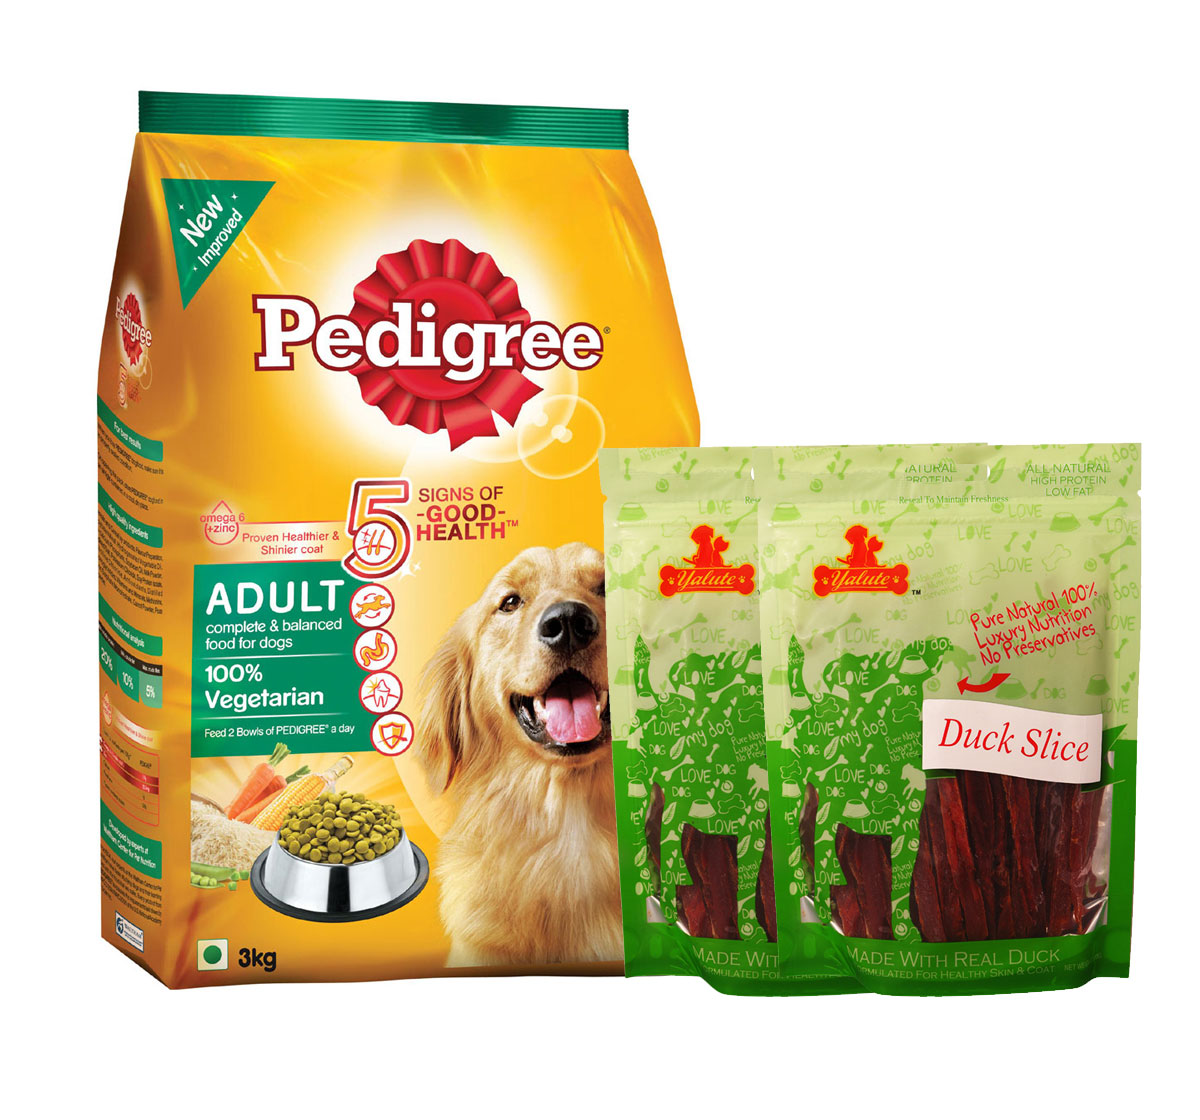 pedigree dog food adult 100 vegetarian 3 kg with duck slices dogspot online pet supply store. Black Bedroom Furniture Sets. Home Design Ideas